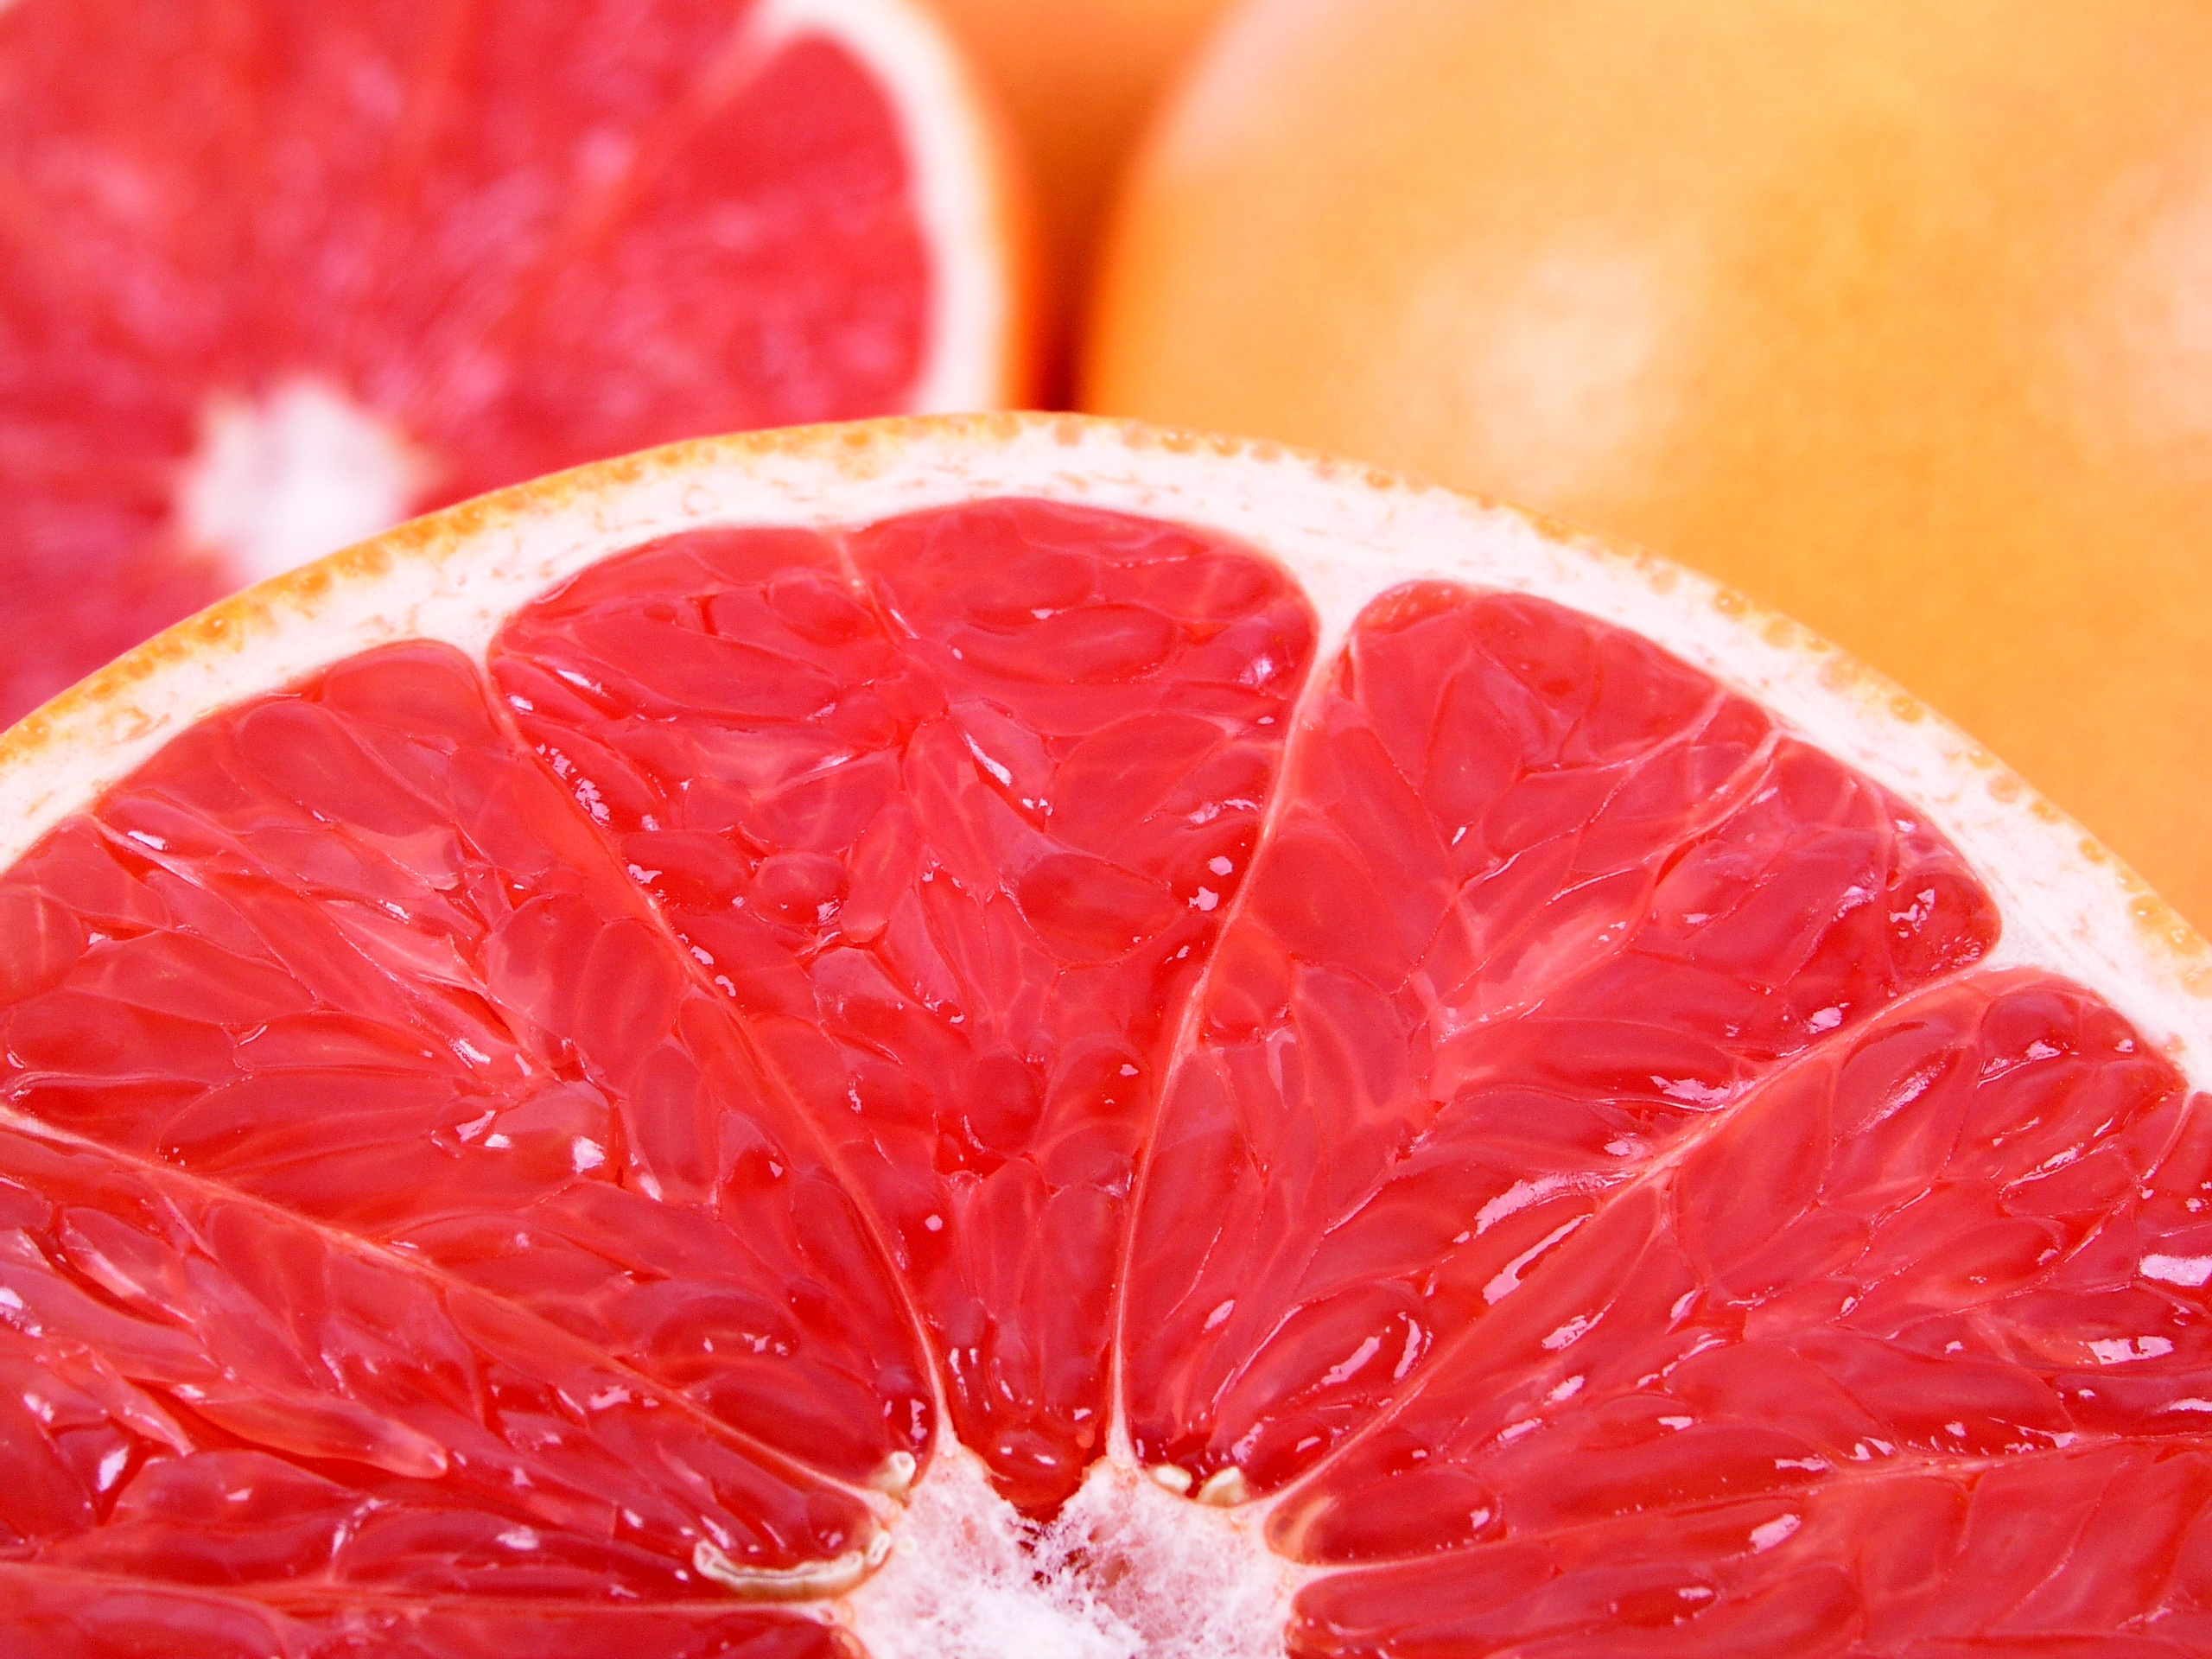 6792410-free-grapefruit-wallpaper